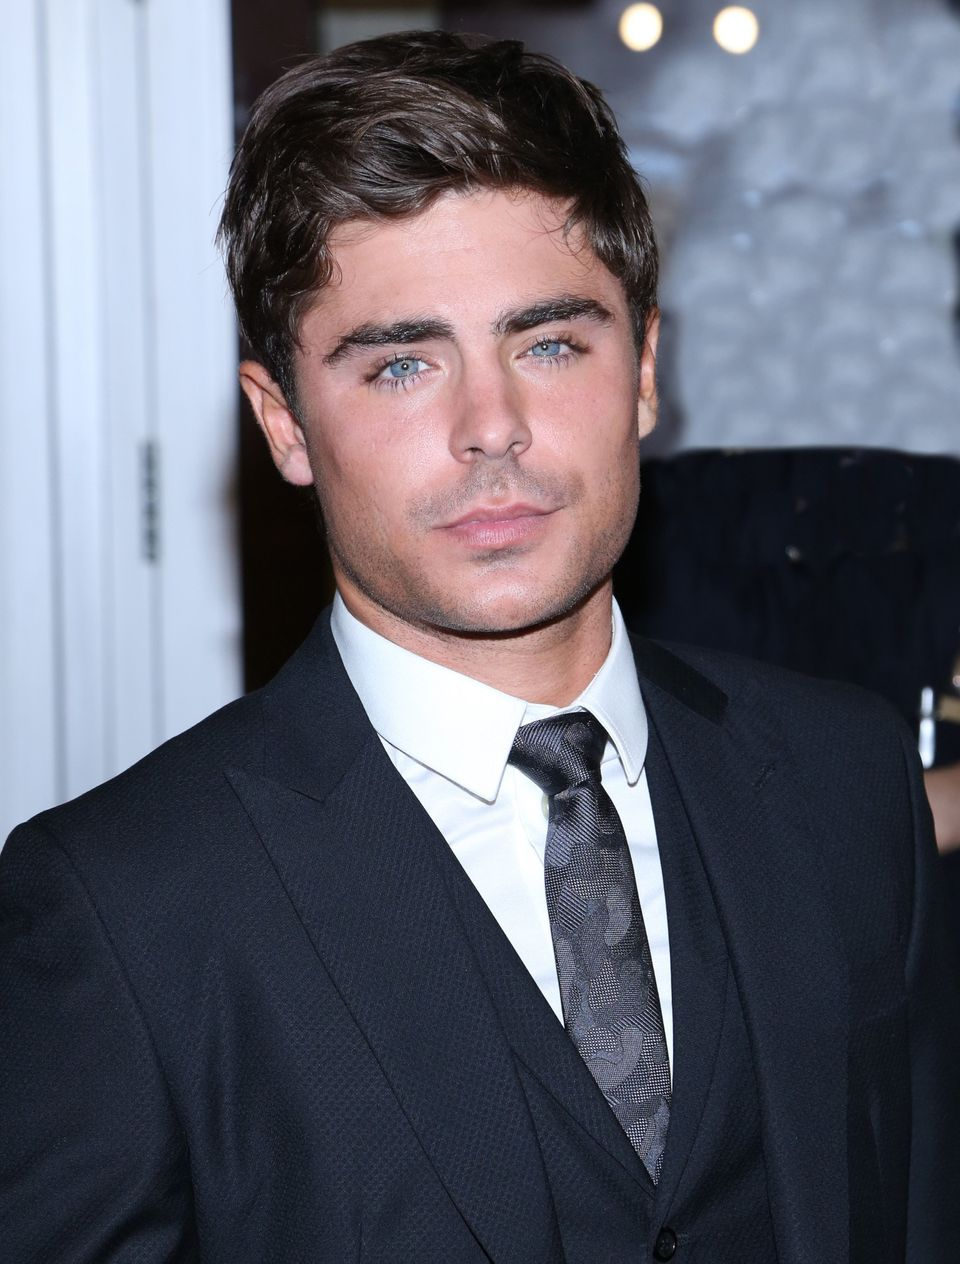 <b>Who?</b> Zac Efron <b>Where?</b> Undisclosed <b>When?</b> 2013 <b>Why?</b> Cocaine addiction  After reports surfaced that